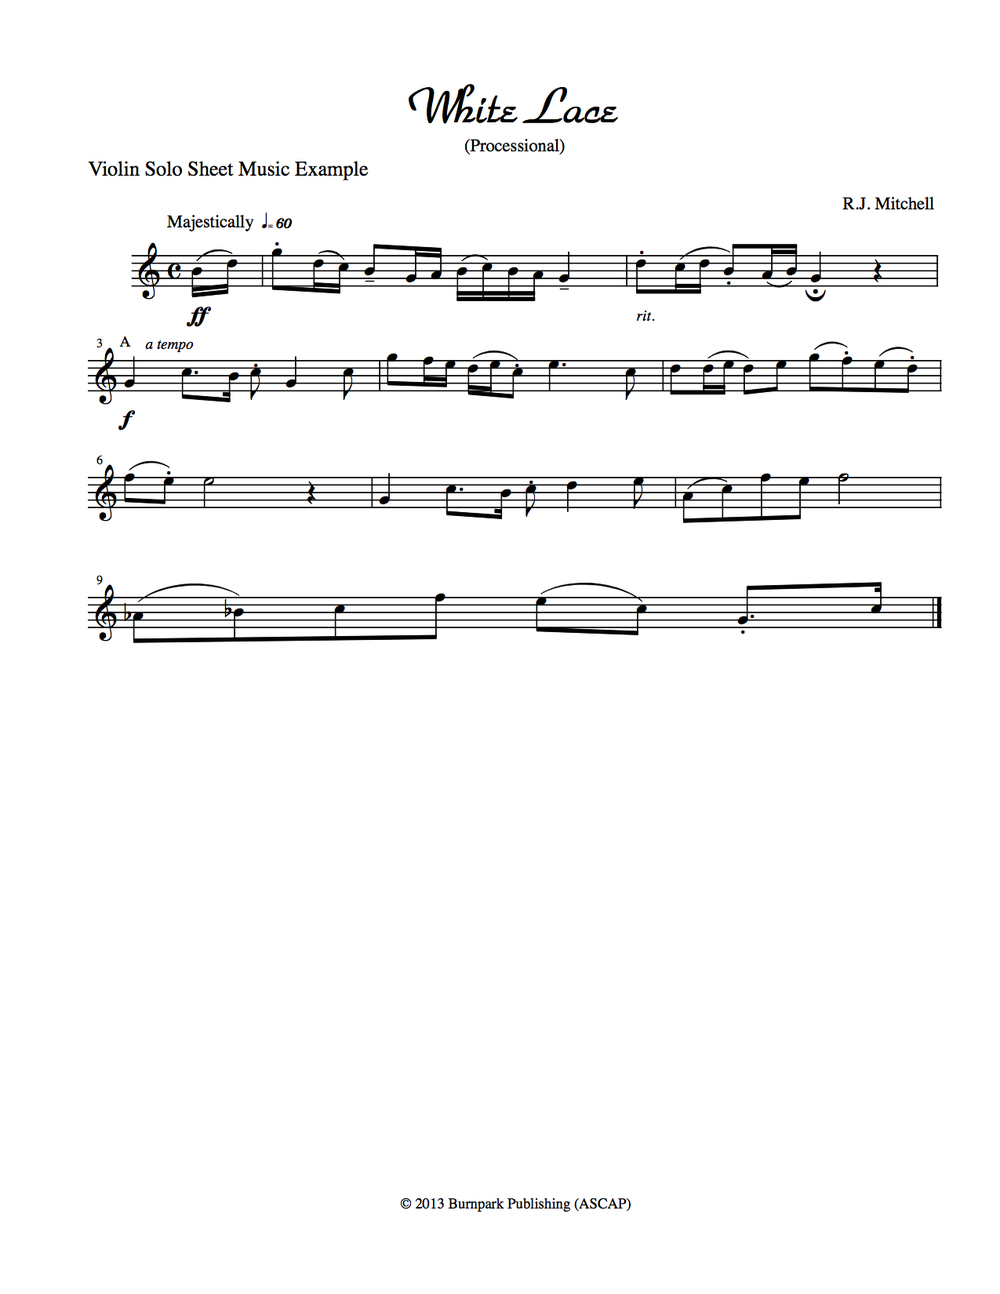 Violin Sheet Music Example